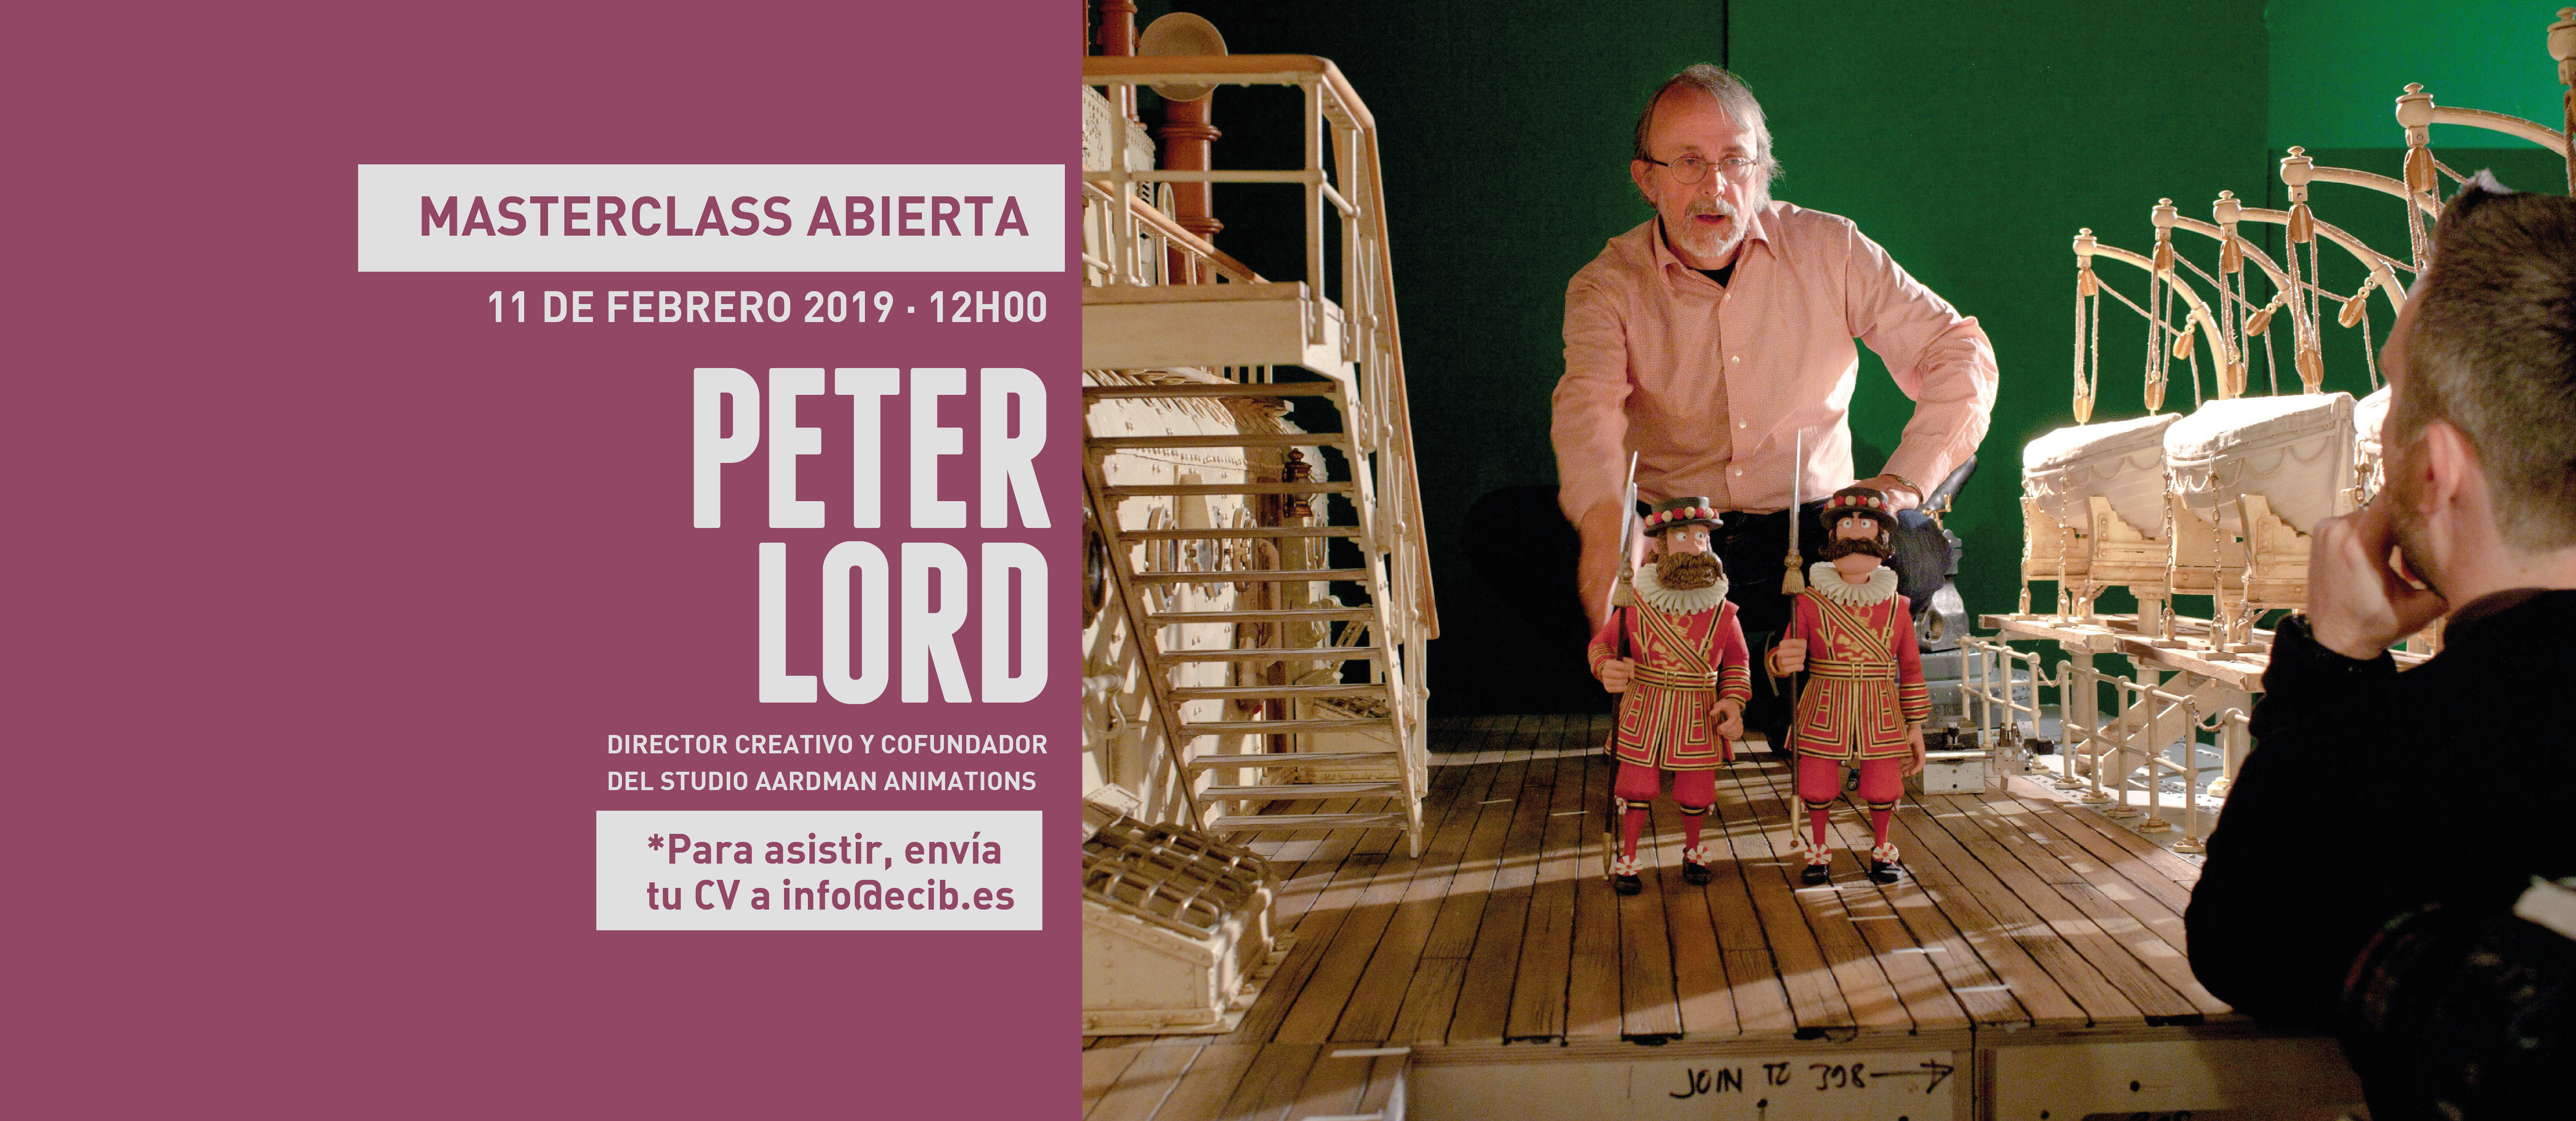 Peter Lord